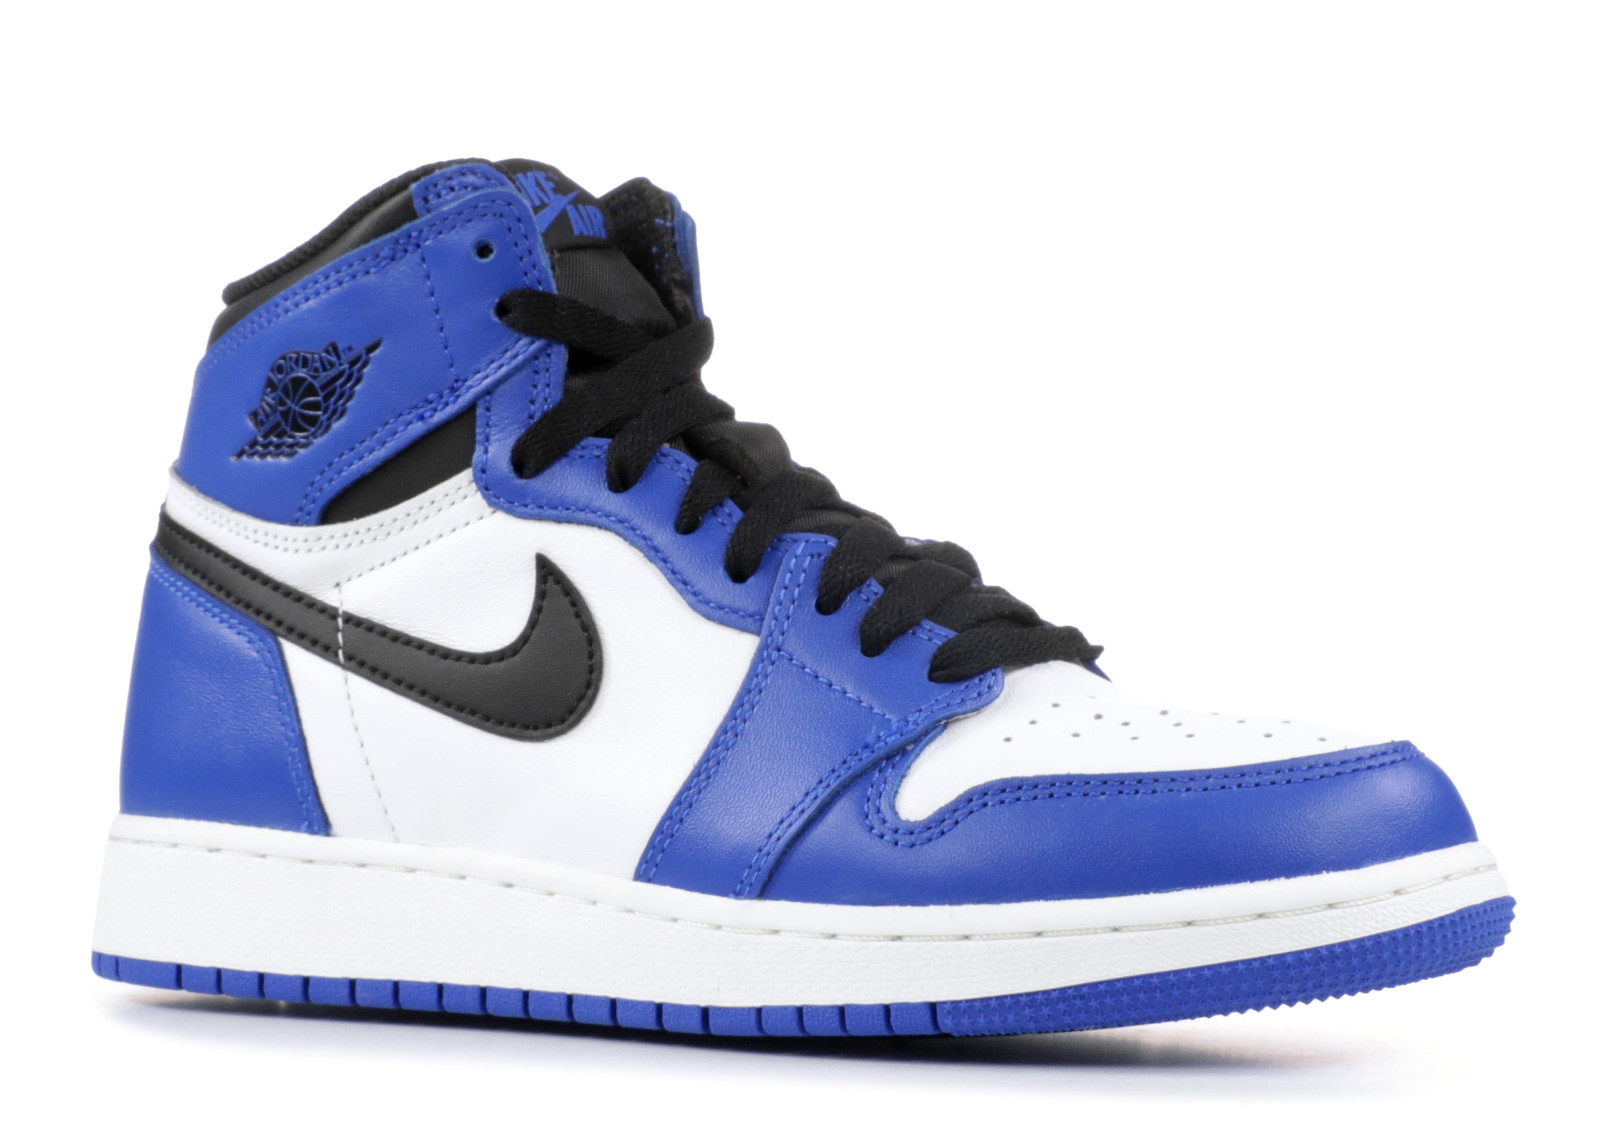 Air Jordan 1 Retro High Og Bg Gs Game Royal 575441 403 Walmart Com Walmart Com